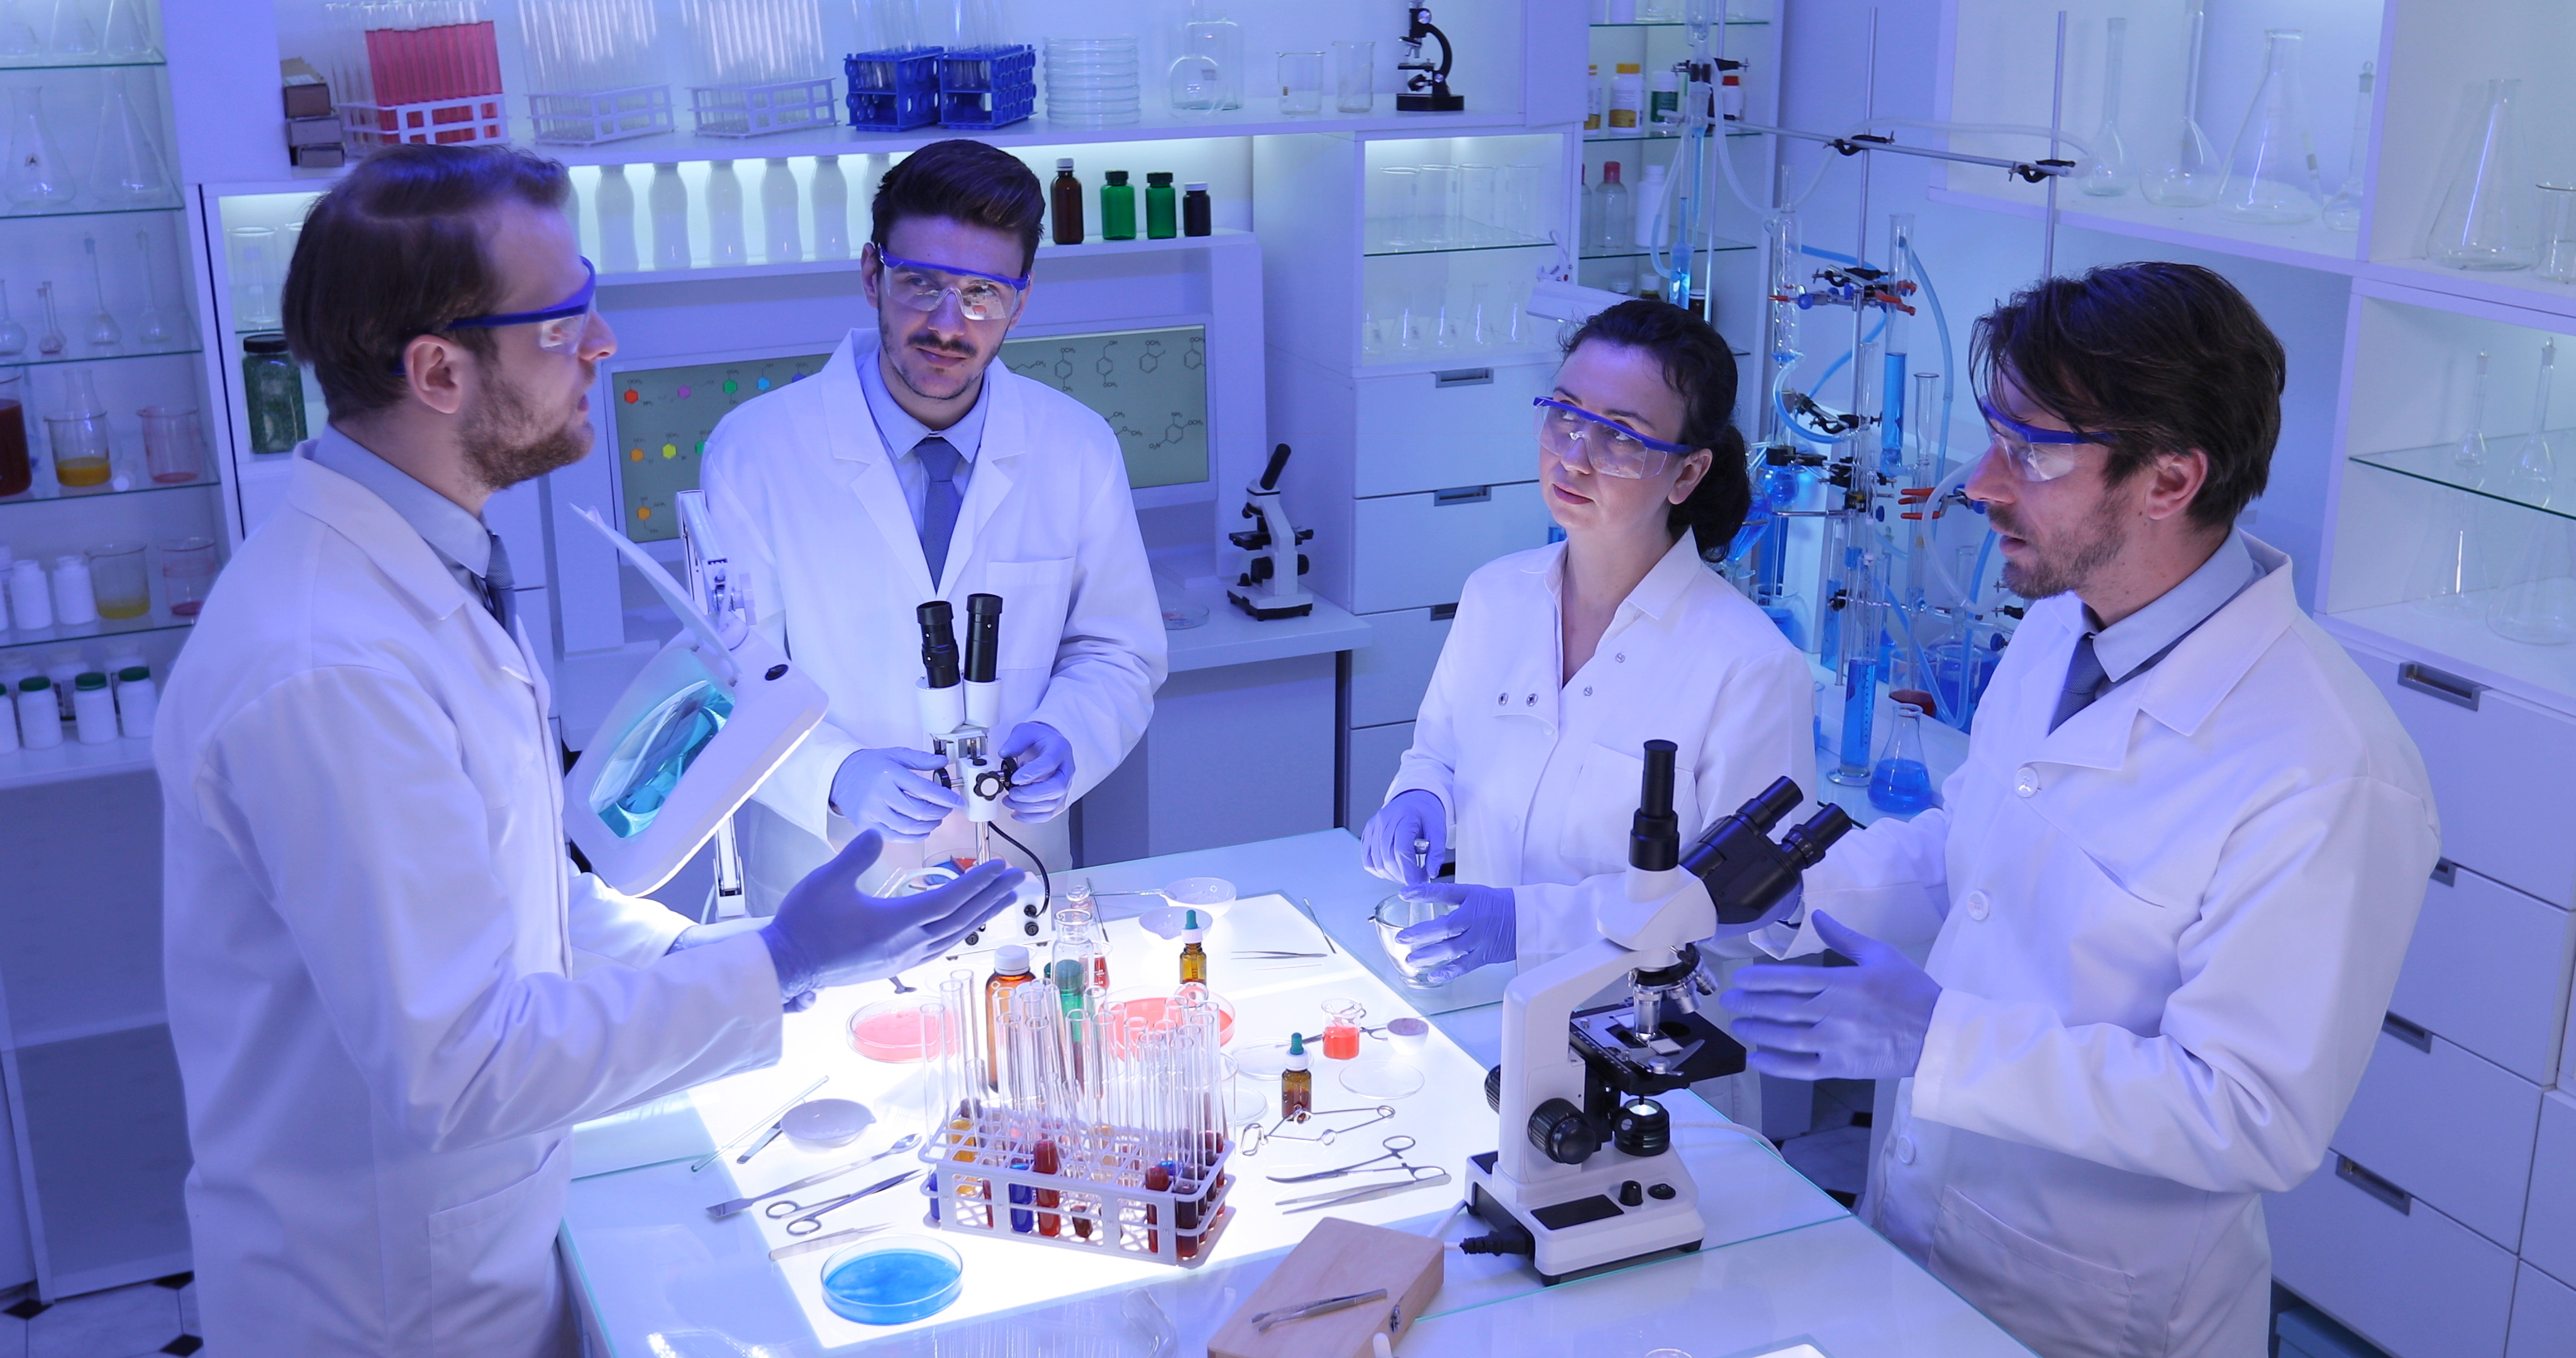 Forensics Team Working in Medical Hospital Laboratory, Scientists Talking and Collaborating in a Research Science Project - Image